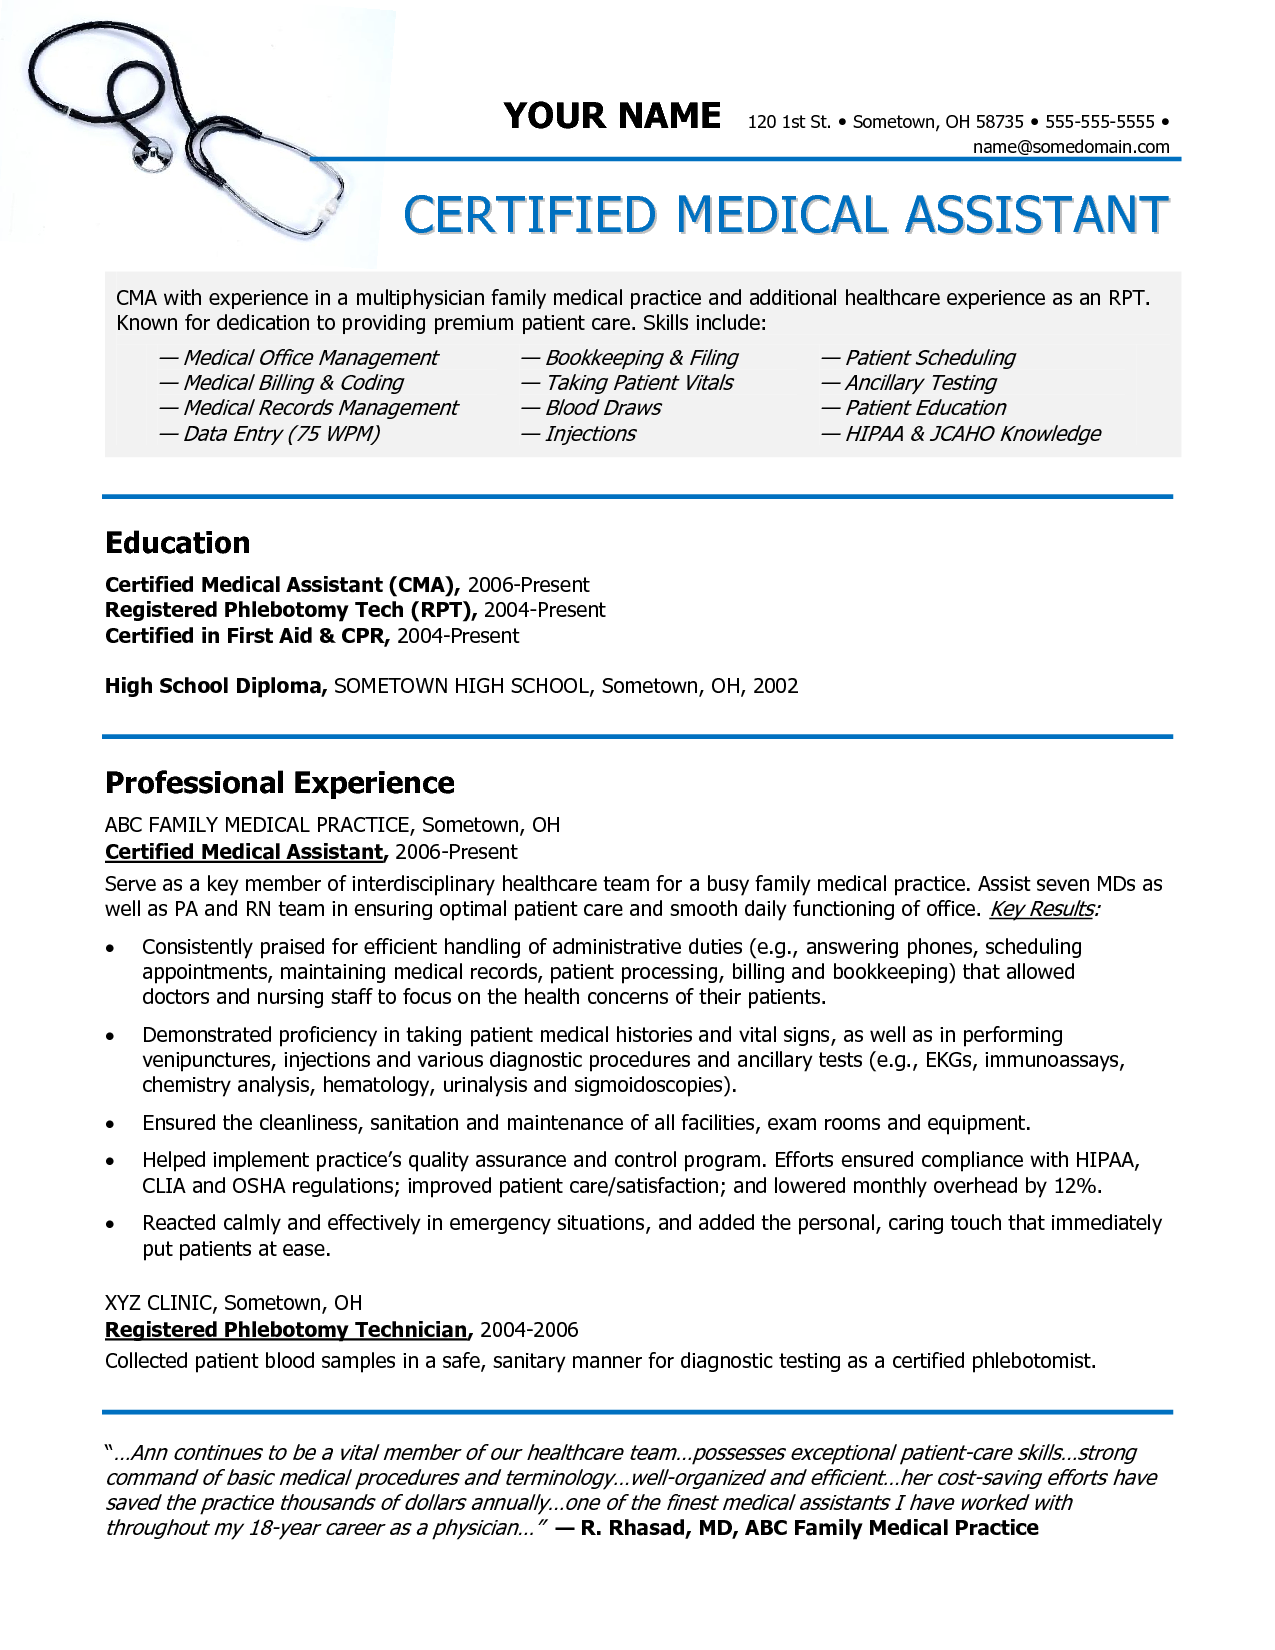 Superior Medical Assistant Resume Entry Level Examples 18 Medical Assistant .  Medical Assistant Student Resume